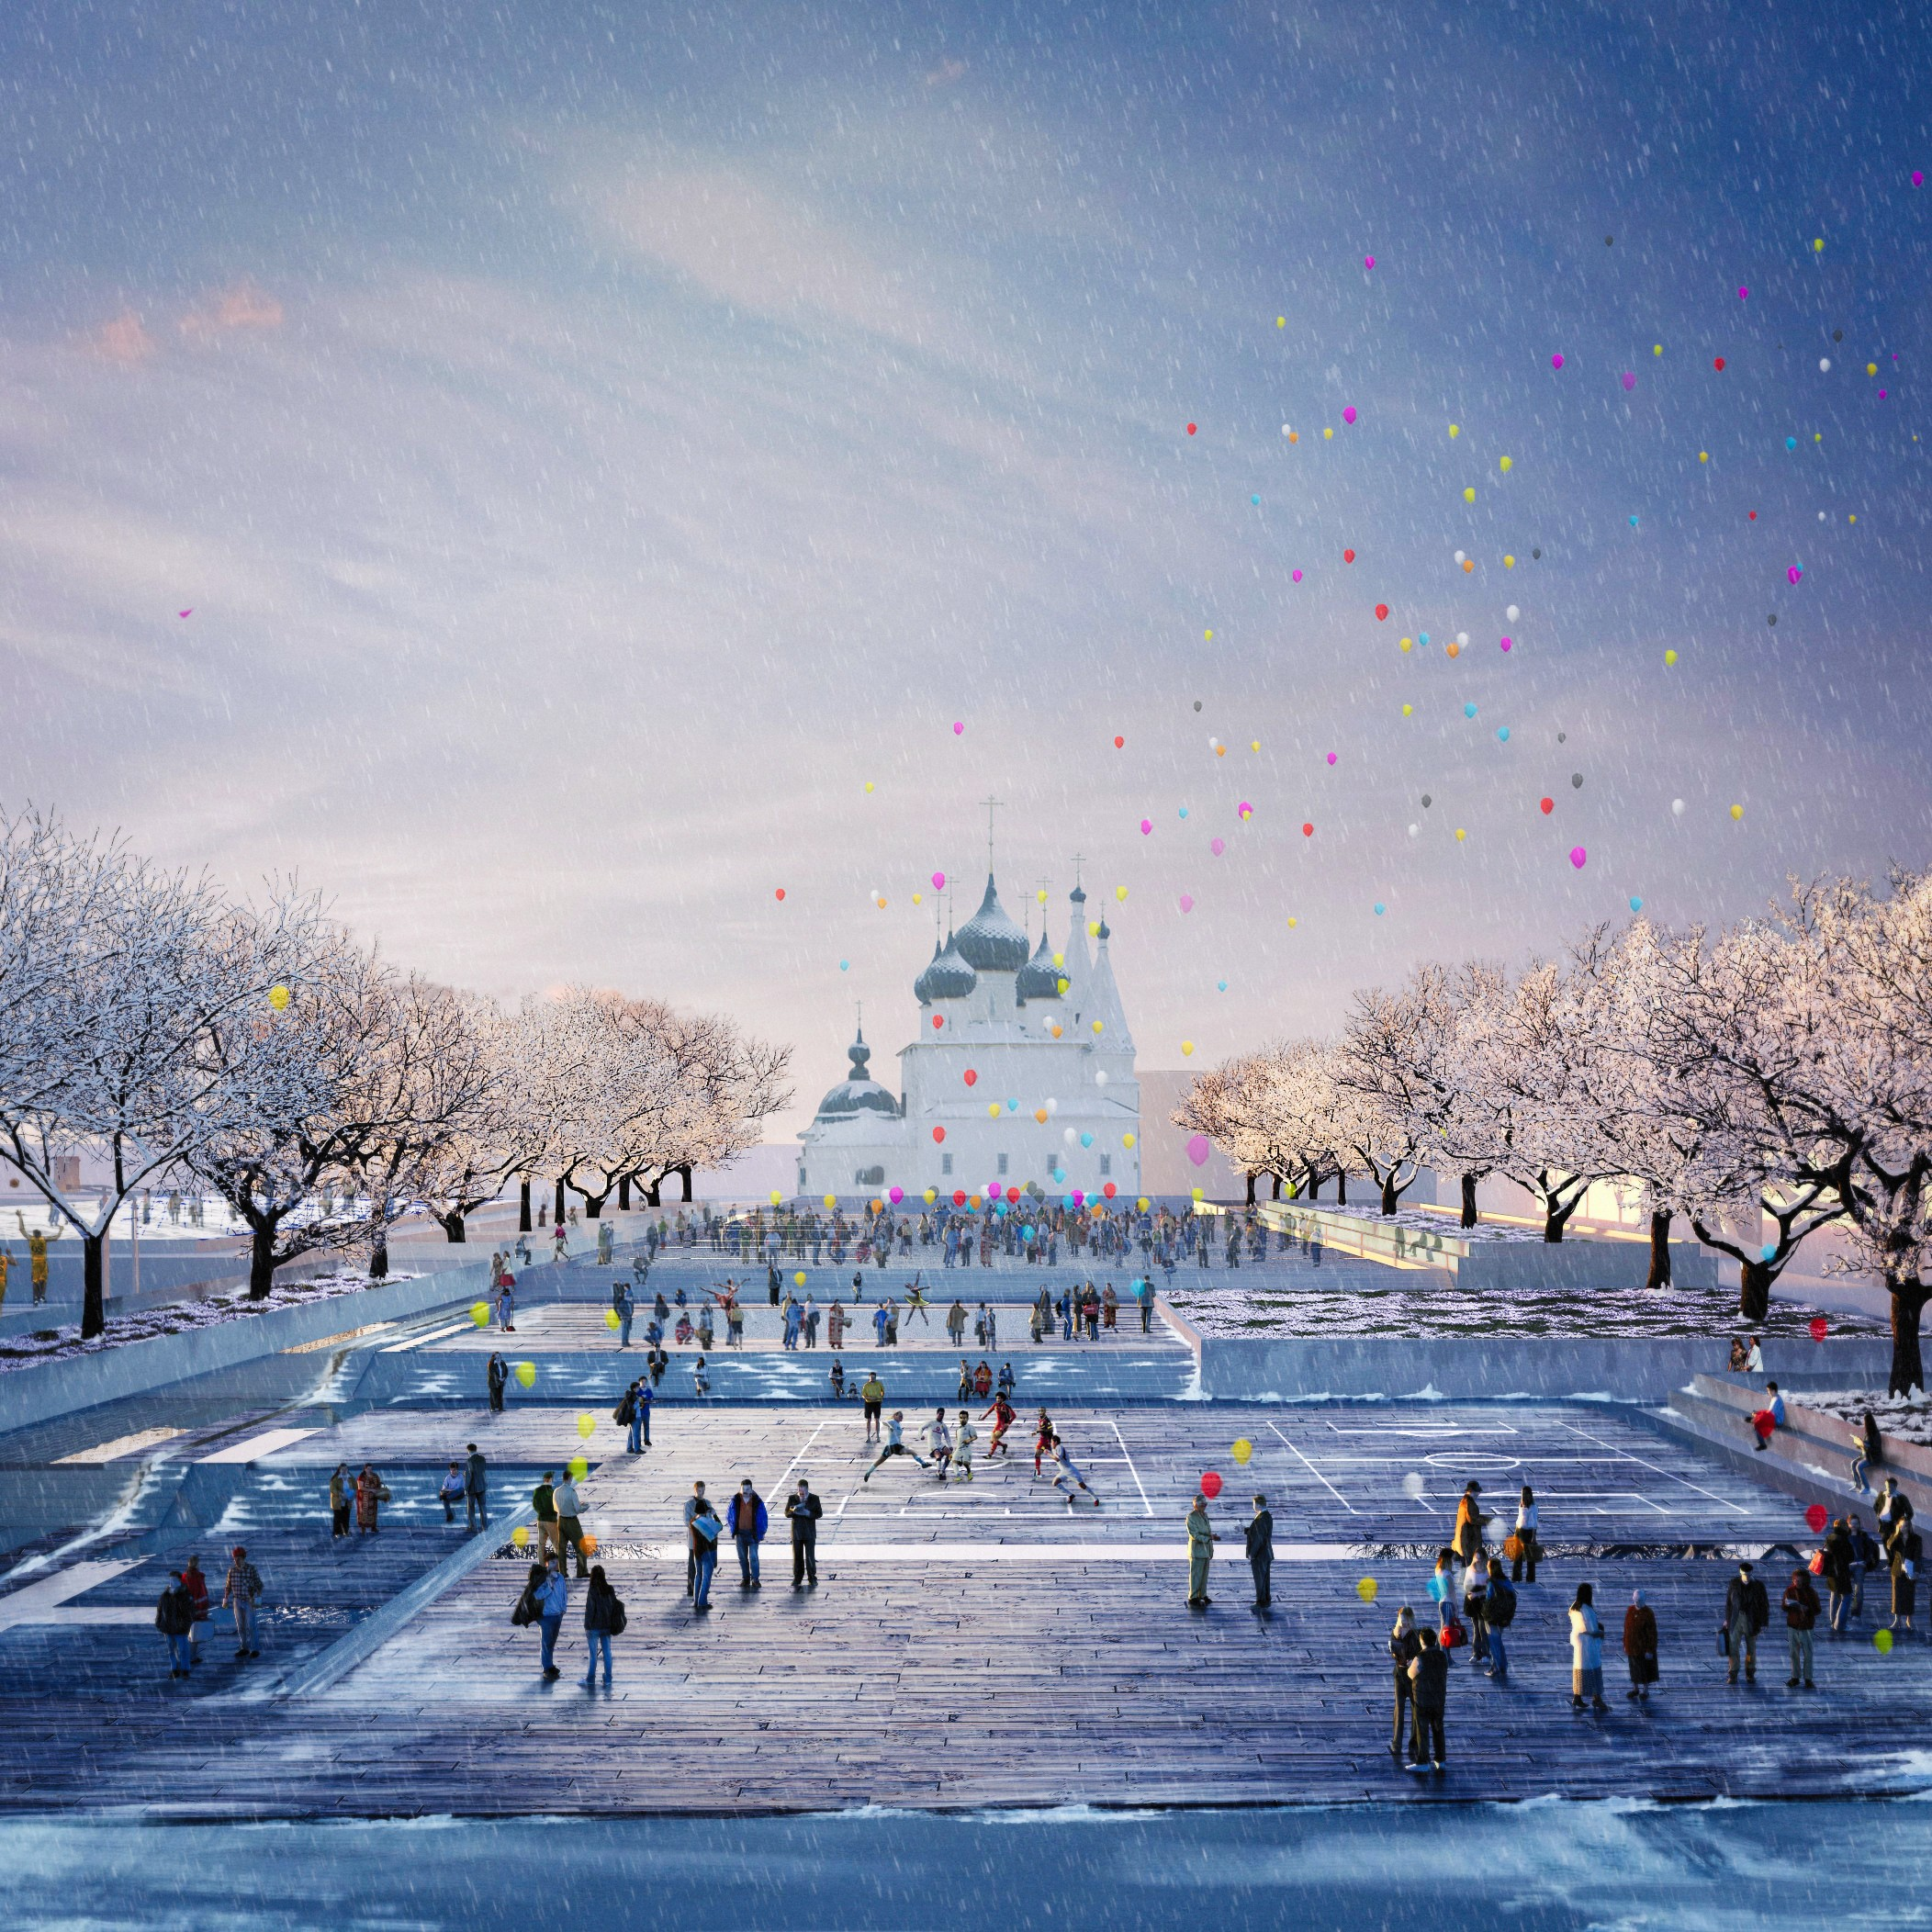 Community and Earth – Art Gallery & Public Plaza - The design submerges the Art Gallery into the earth, a place to escape and quietly enjoy Art. On the roof, a large public plaza frames views of the nearby heritage church. A place to celebrate, iceskate and gather as a community.